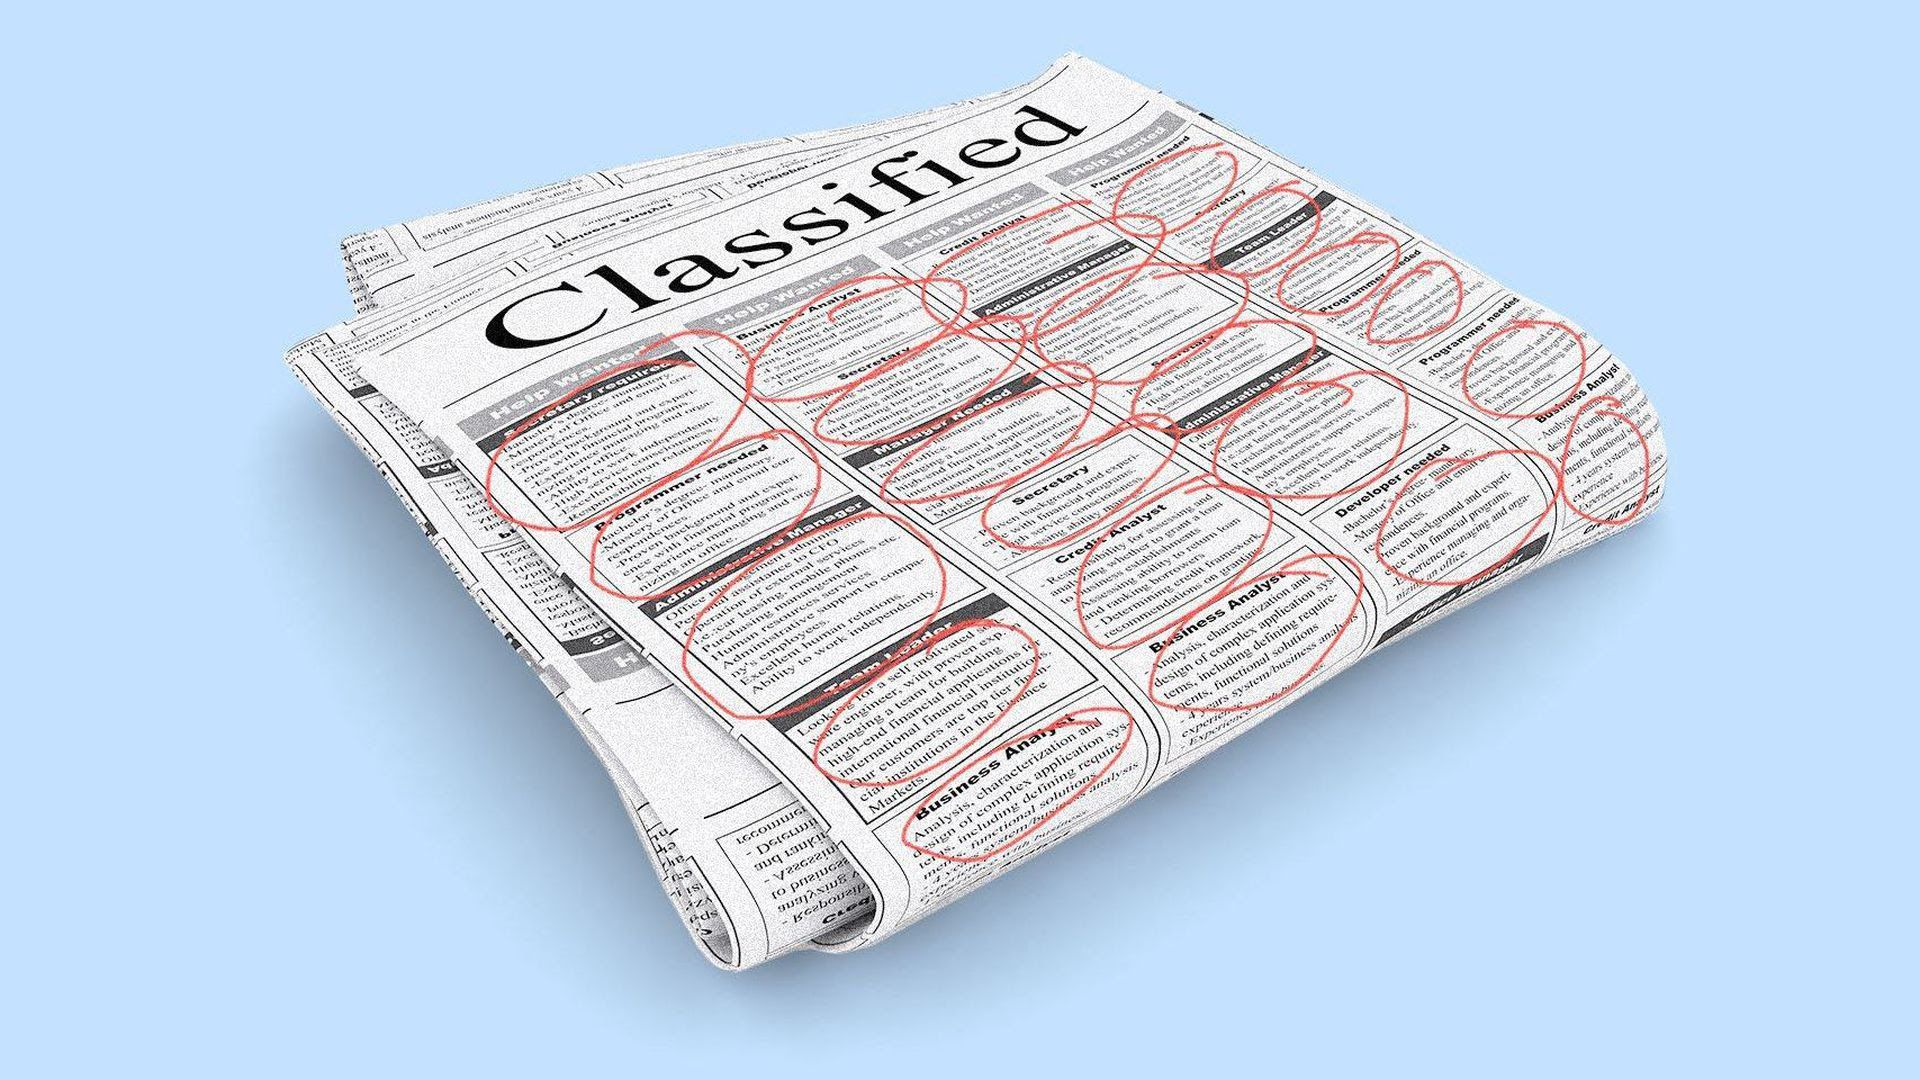 Intend To Find Classifieds by Category